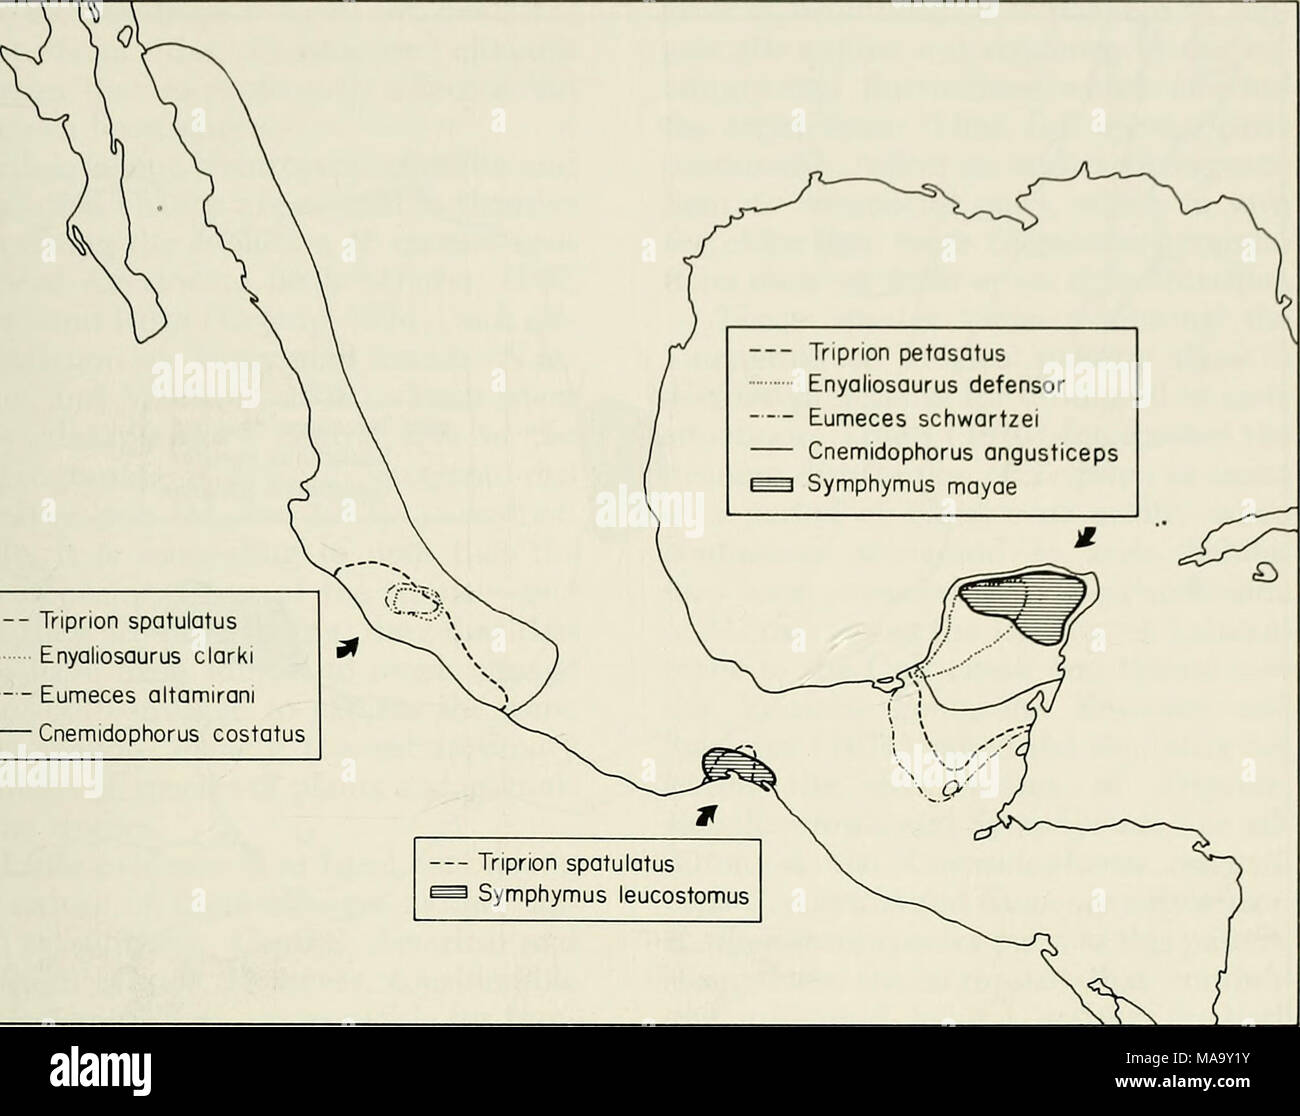 . An ecogeographic analysis of the herpetofauna of the Yucatan Peninsula . Triprion spatulatus Enyaliosaurus clarki Eumeces altamirani Cnemidophorus costatus Fig. 21.—The Yucatan-West Mexico pattern of distribution. Extra-peninsular distributions are rough approximations. limits of this mesophilic genus. Thus, two mesic-adapted species are confined to the north end of the peninsula, but have their closest relatives in wetter areas to the south. An additional spe- cies, presumably mesophilic, existed at the north end of the peninsula until sometime in the Pleistocene. The foregoing distribution - Stock Image